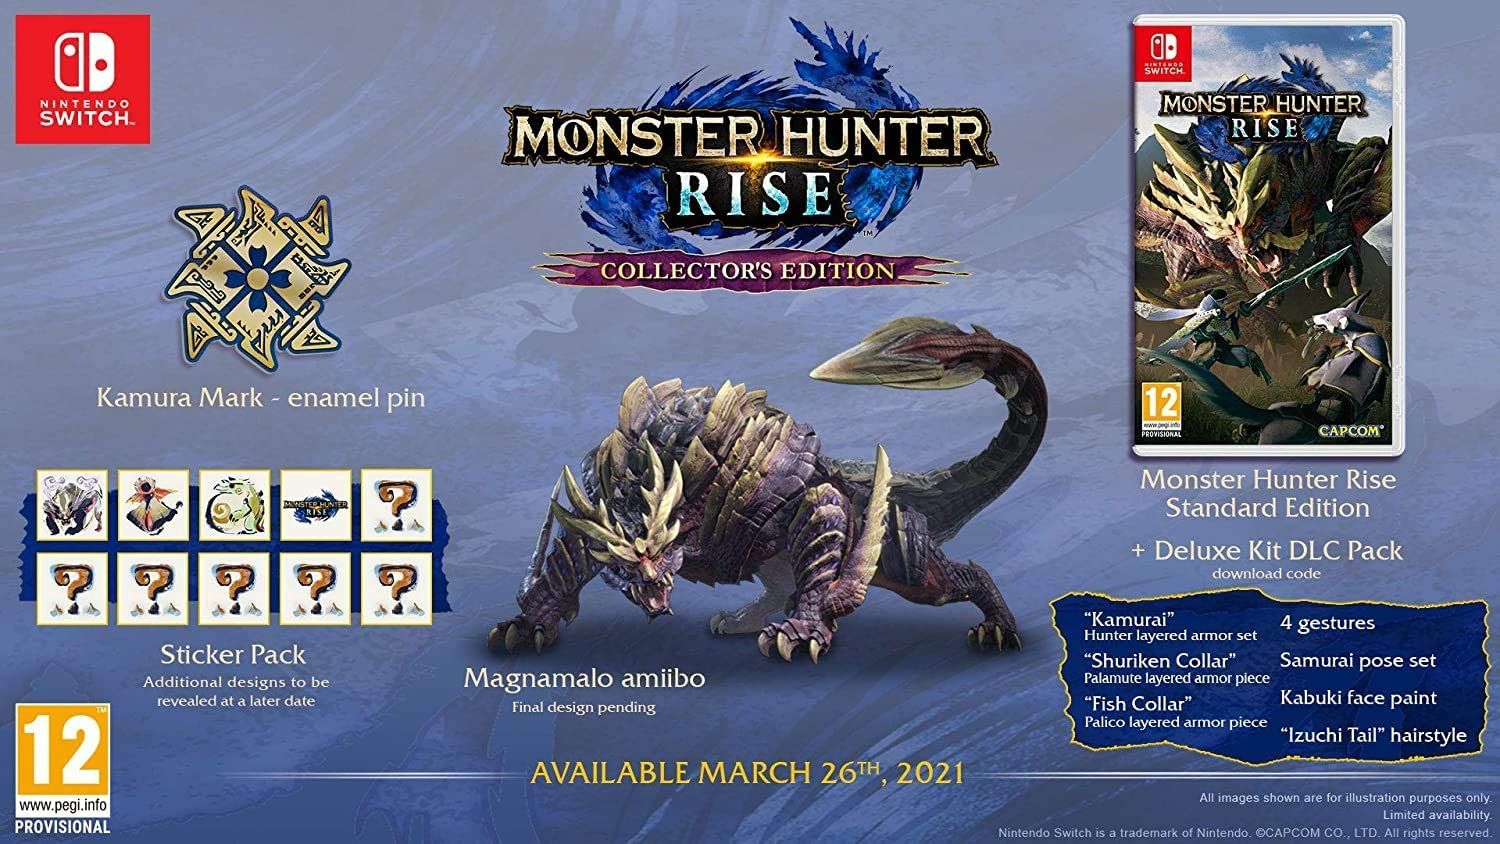 Monster Hunter Rise Collector